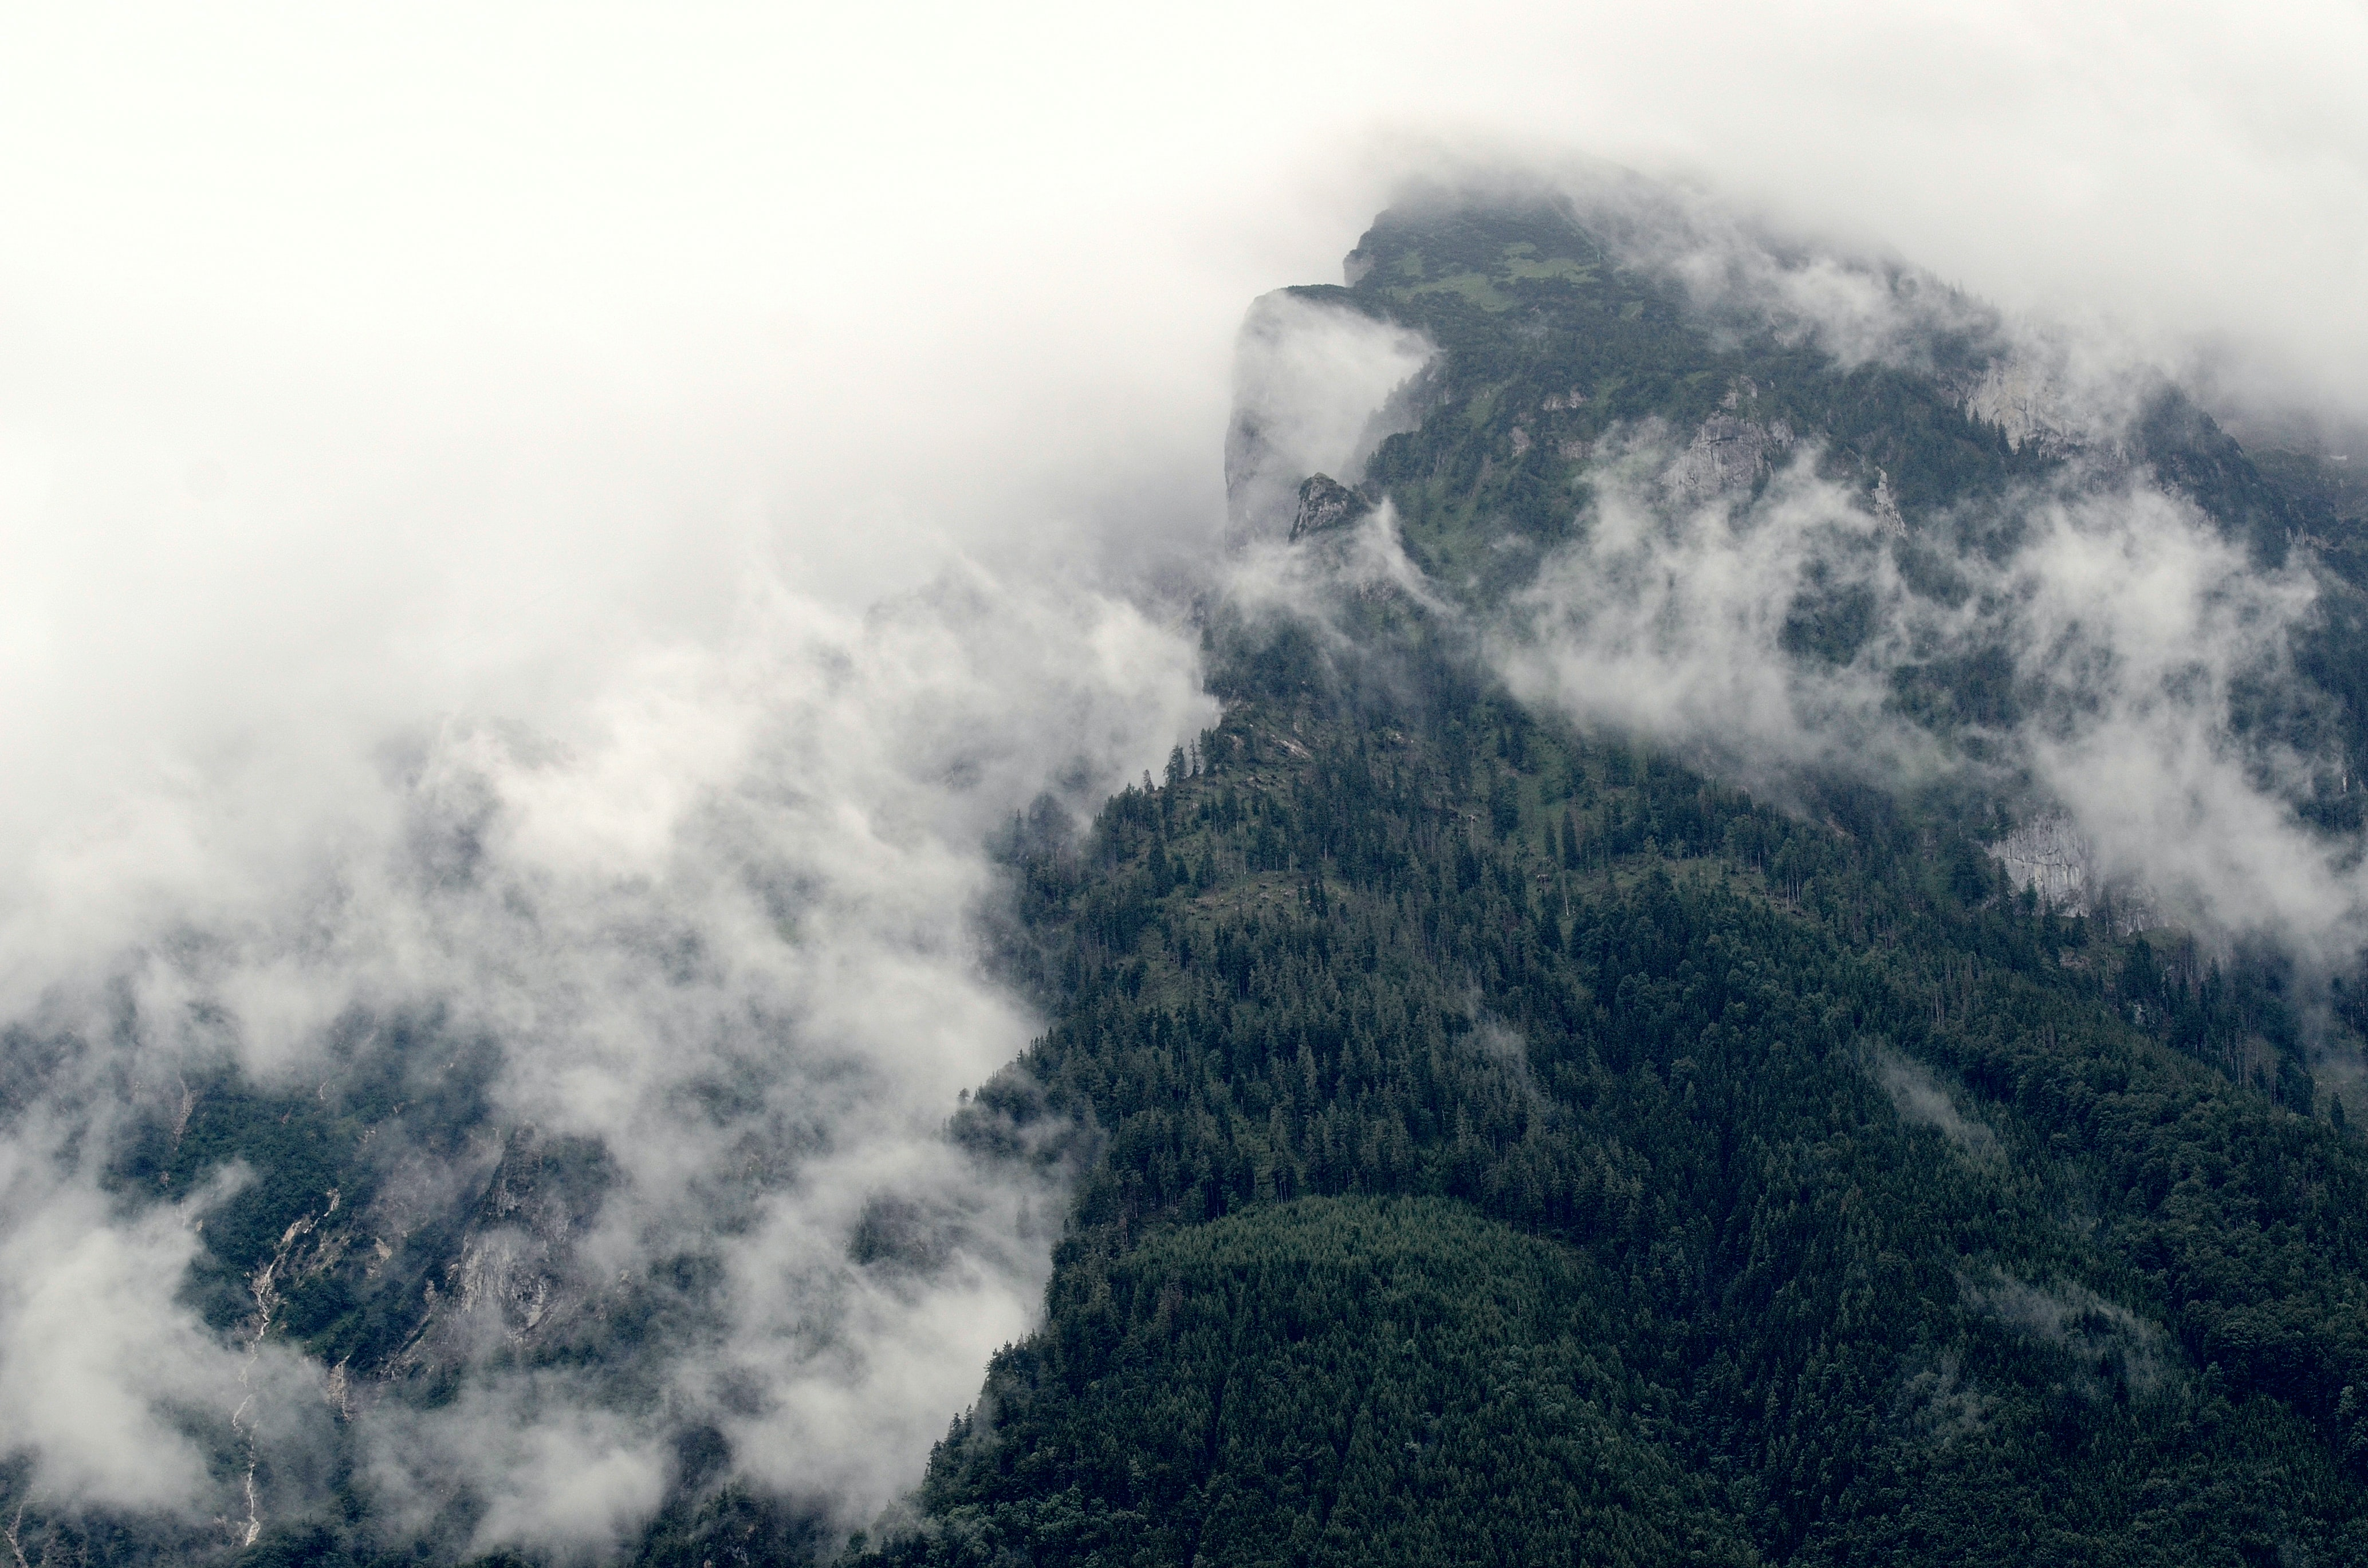 Mist rolling down the heavily wooded slopes of a steep mountain